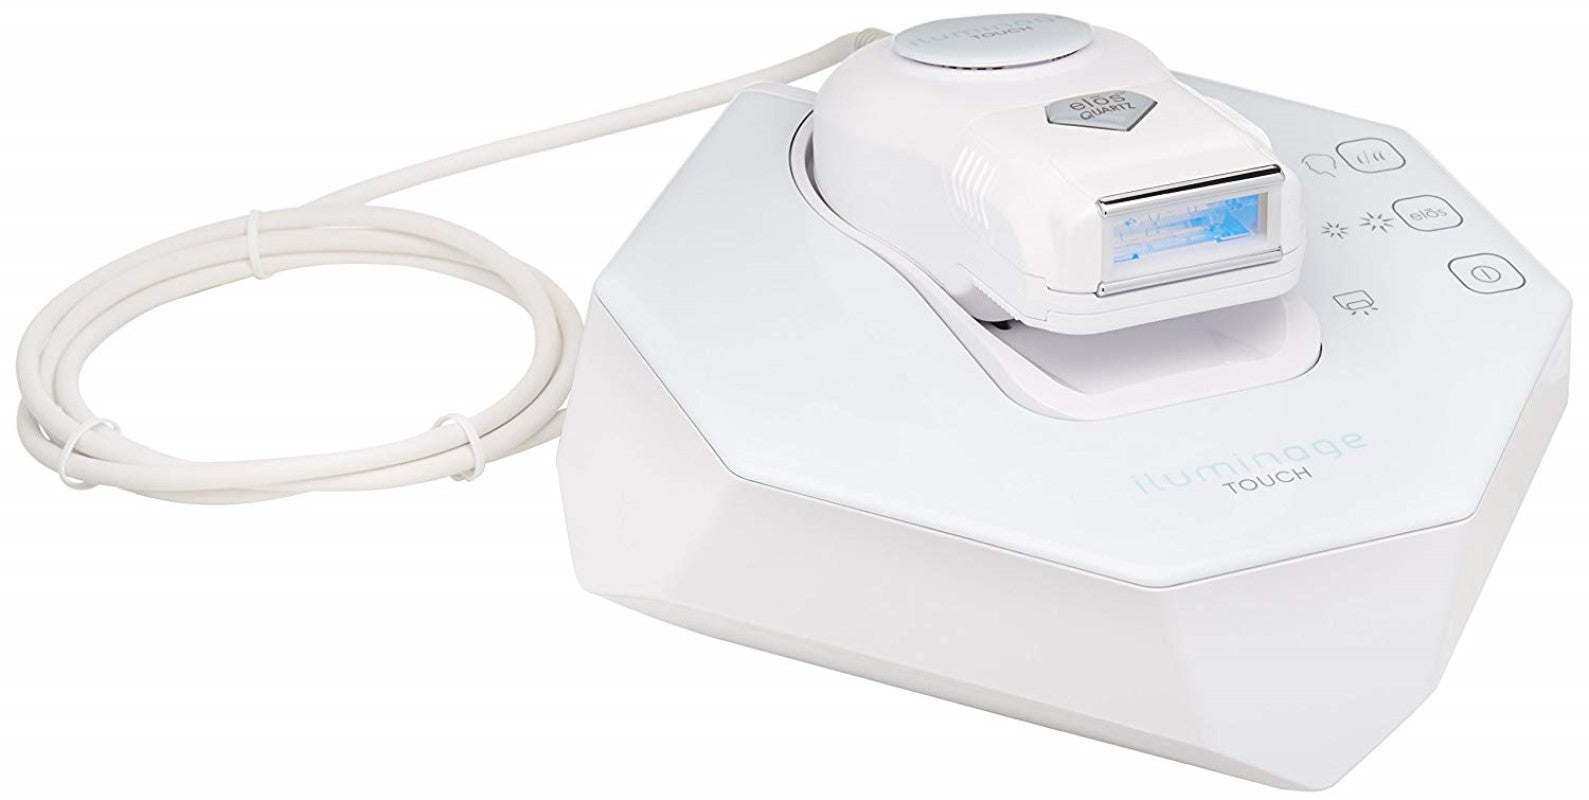 Iluminage Touch At Home Permanent Hair Reduction System (FDA-Cleared) - All Skin Tones